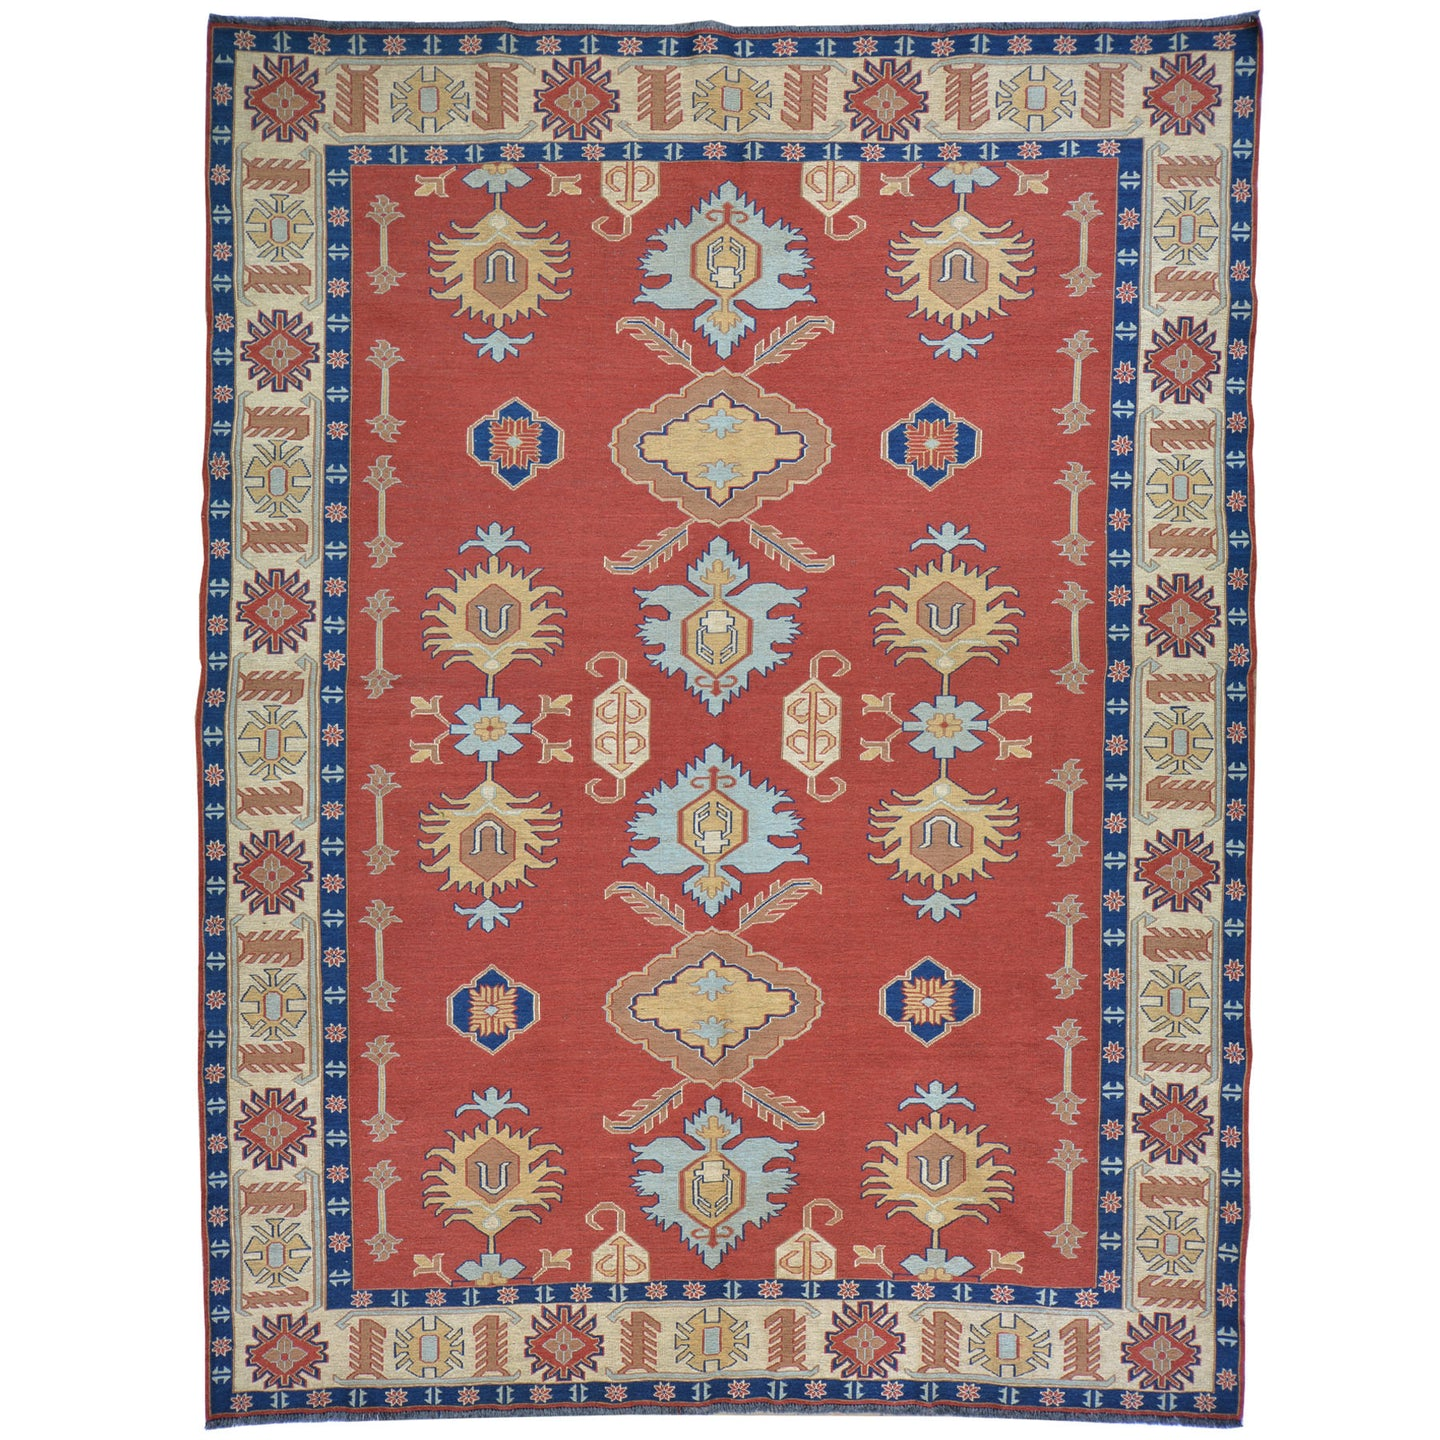 Oriental rugs, hand-knotted carpets, sustainable rugs, classic world oriental rugs, handmade, United States, interior design,  Brral-4113